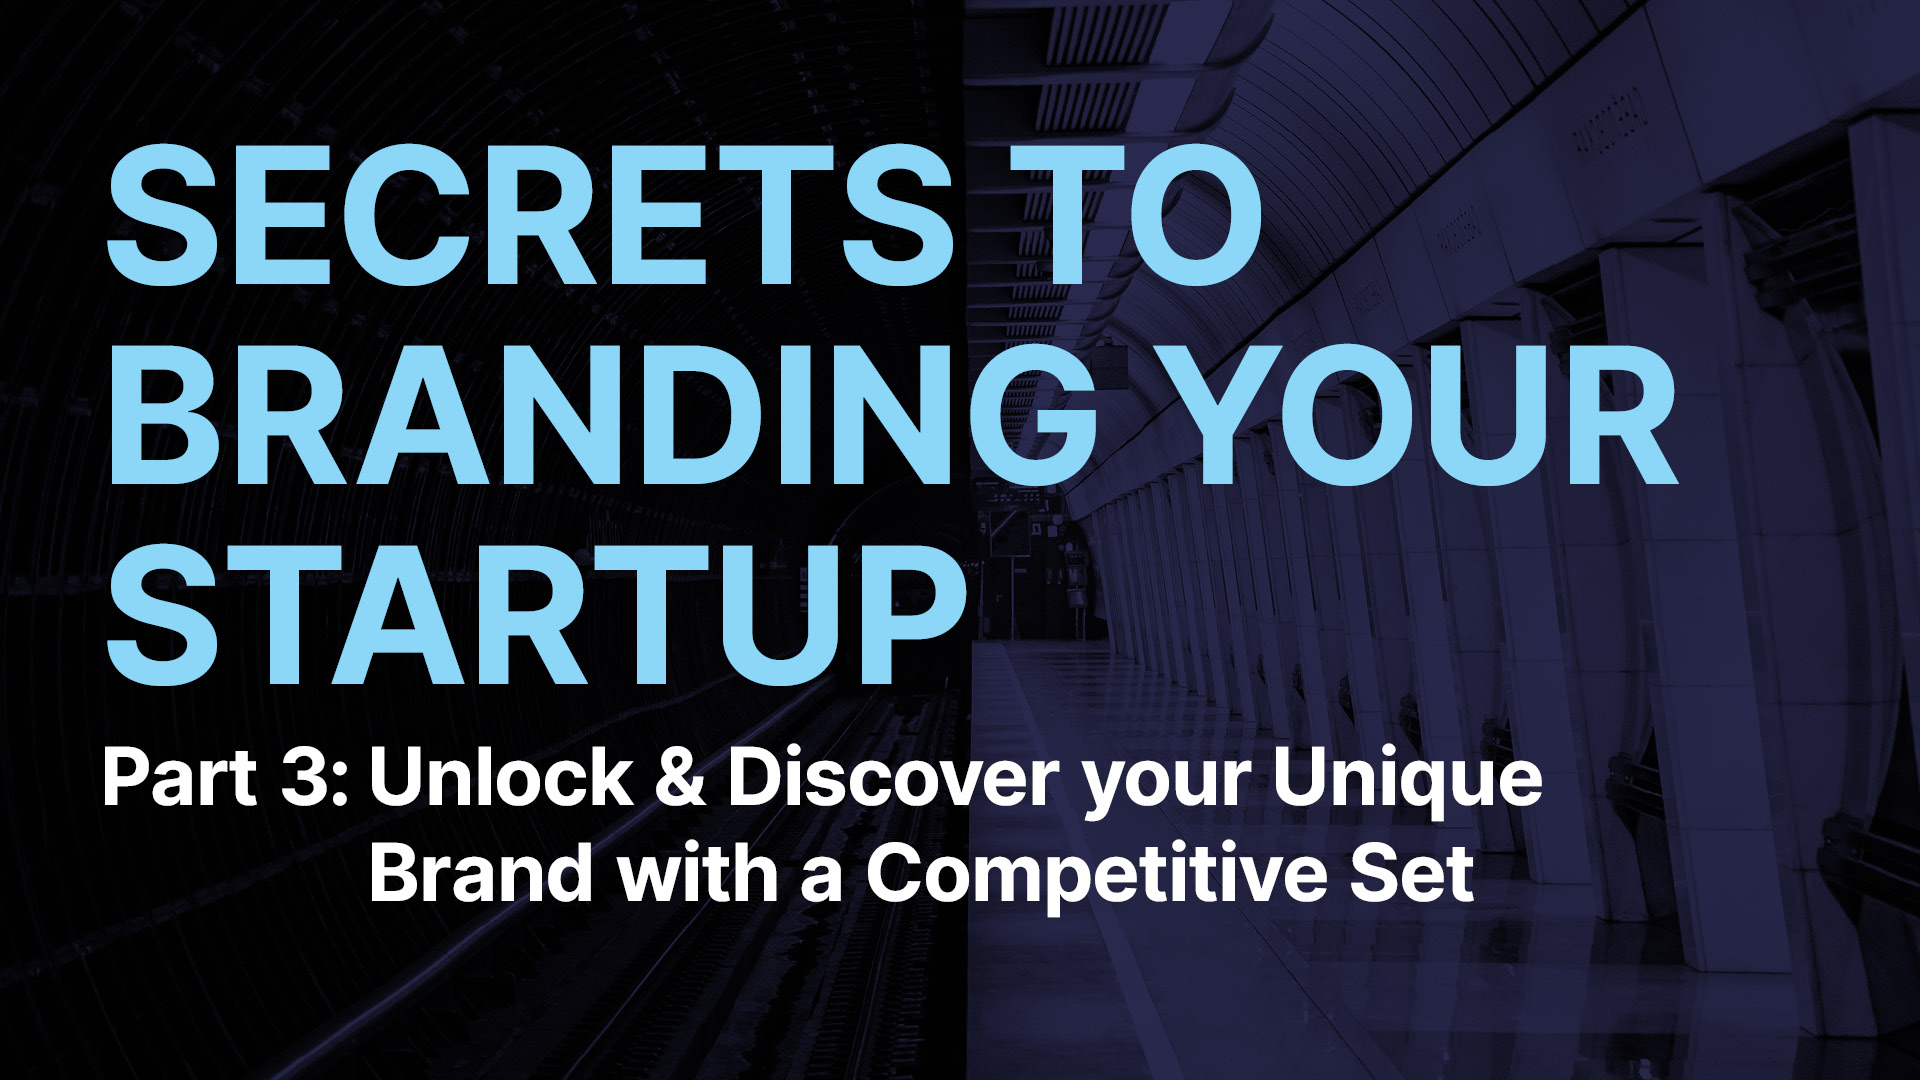 Secrets to Branding your Startup Part 3: Unlock & Discover your Unique Brand with a Competitive Set